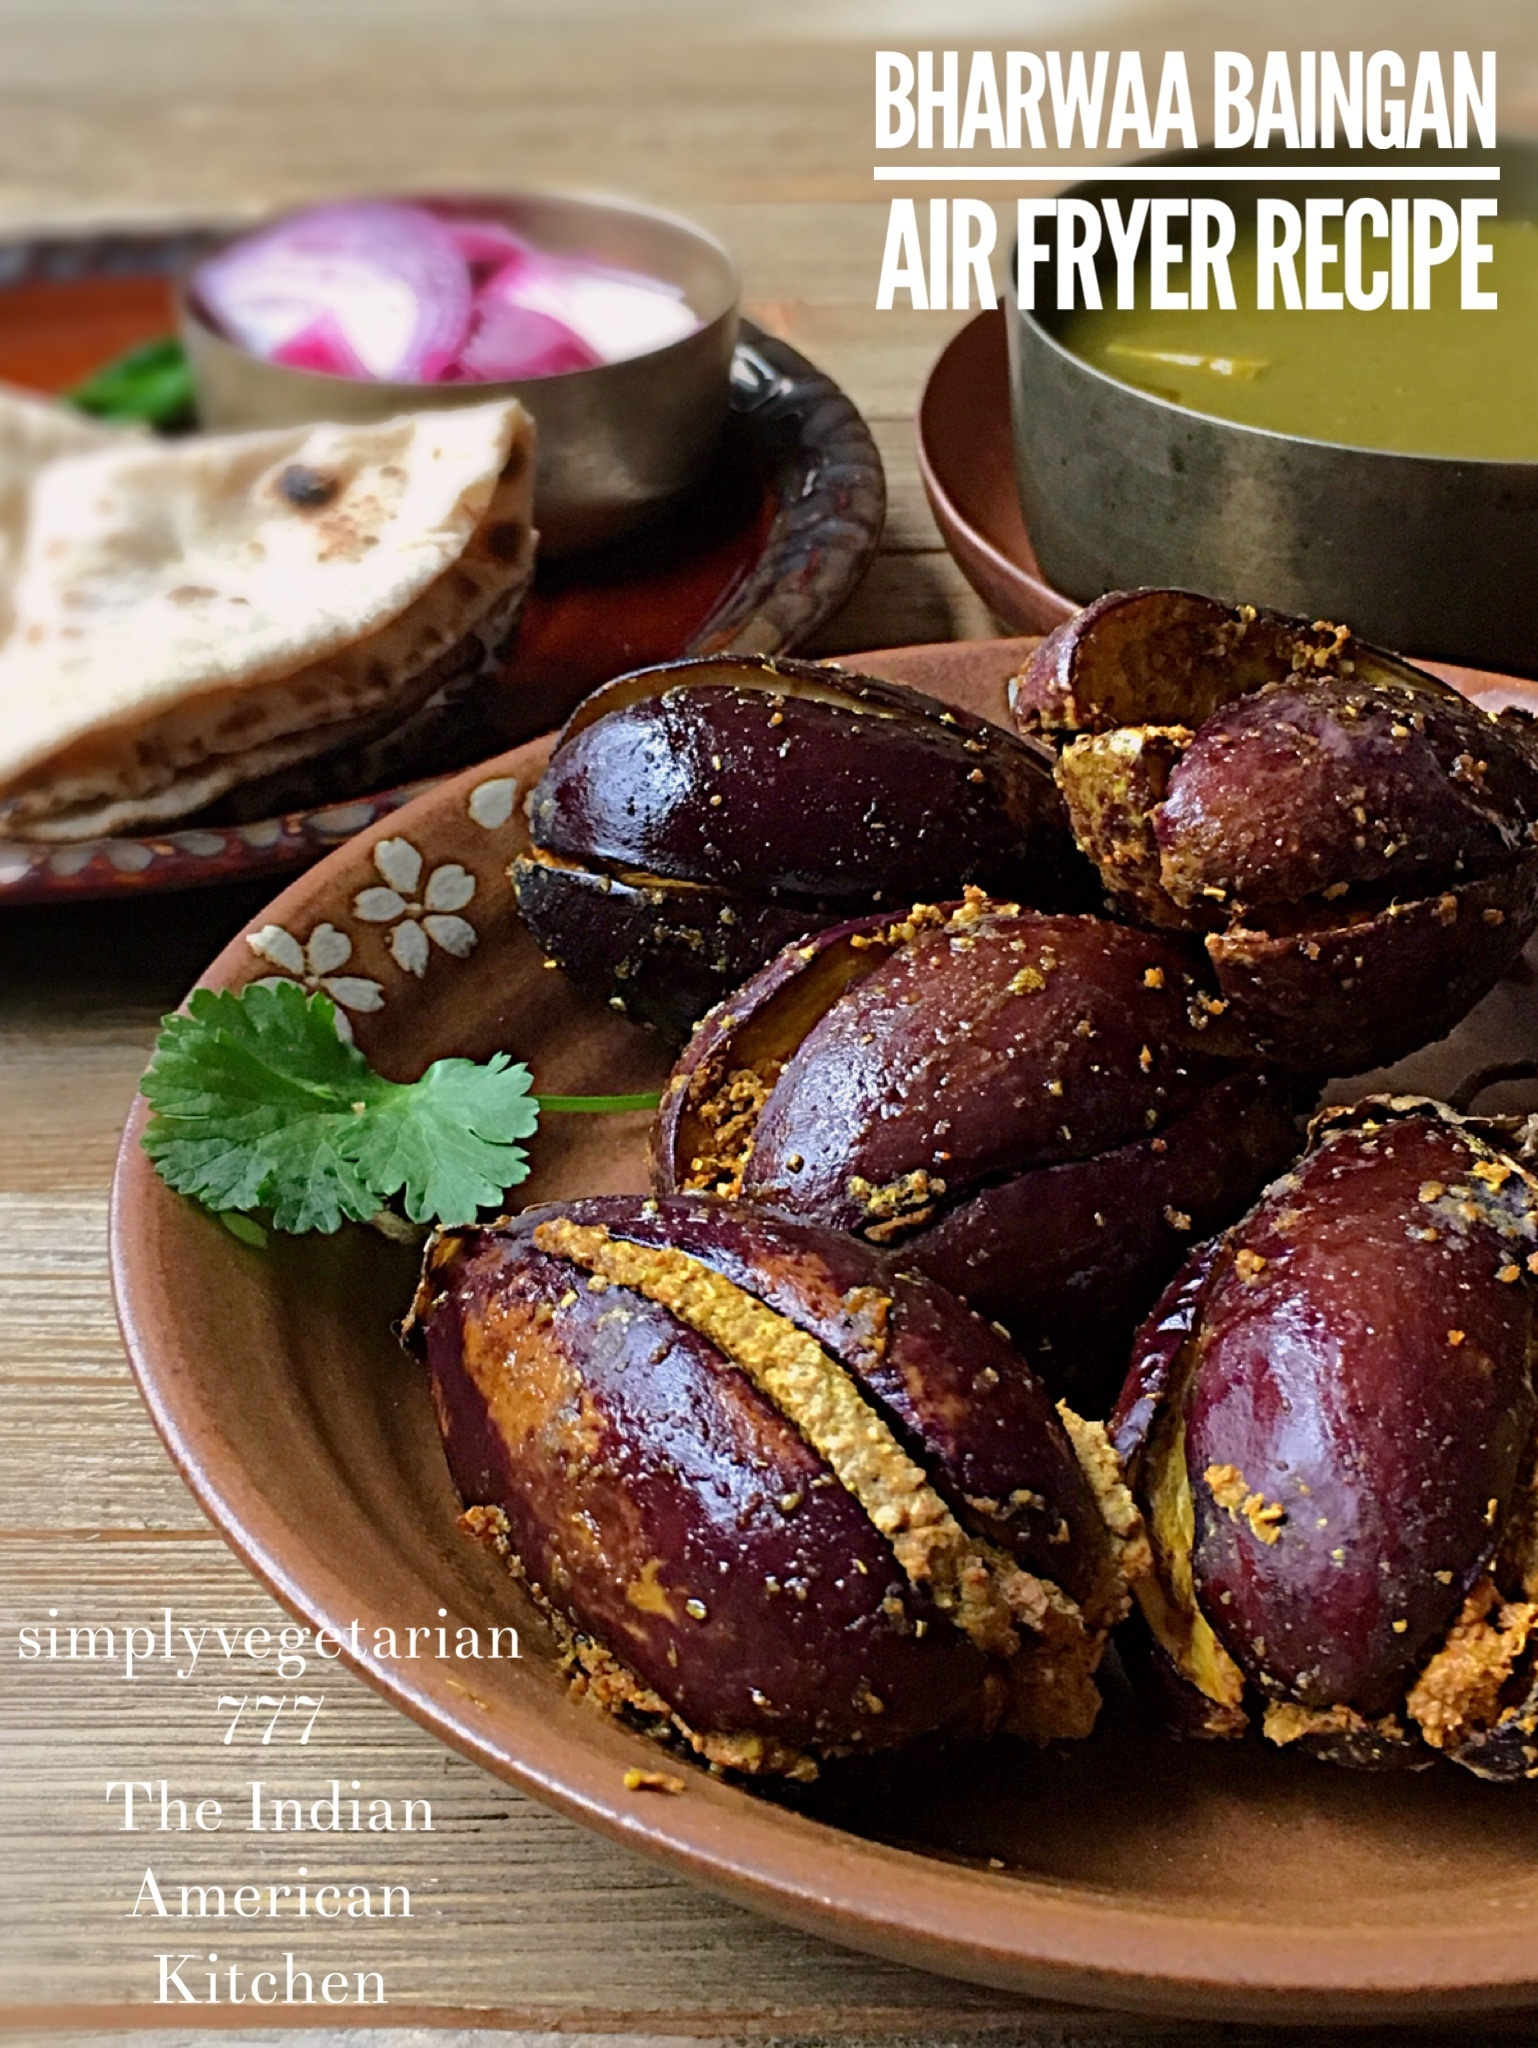 Bharwaan Baingan Air Fryer Recipe